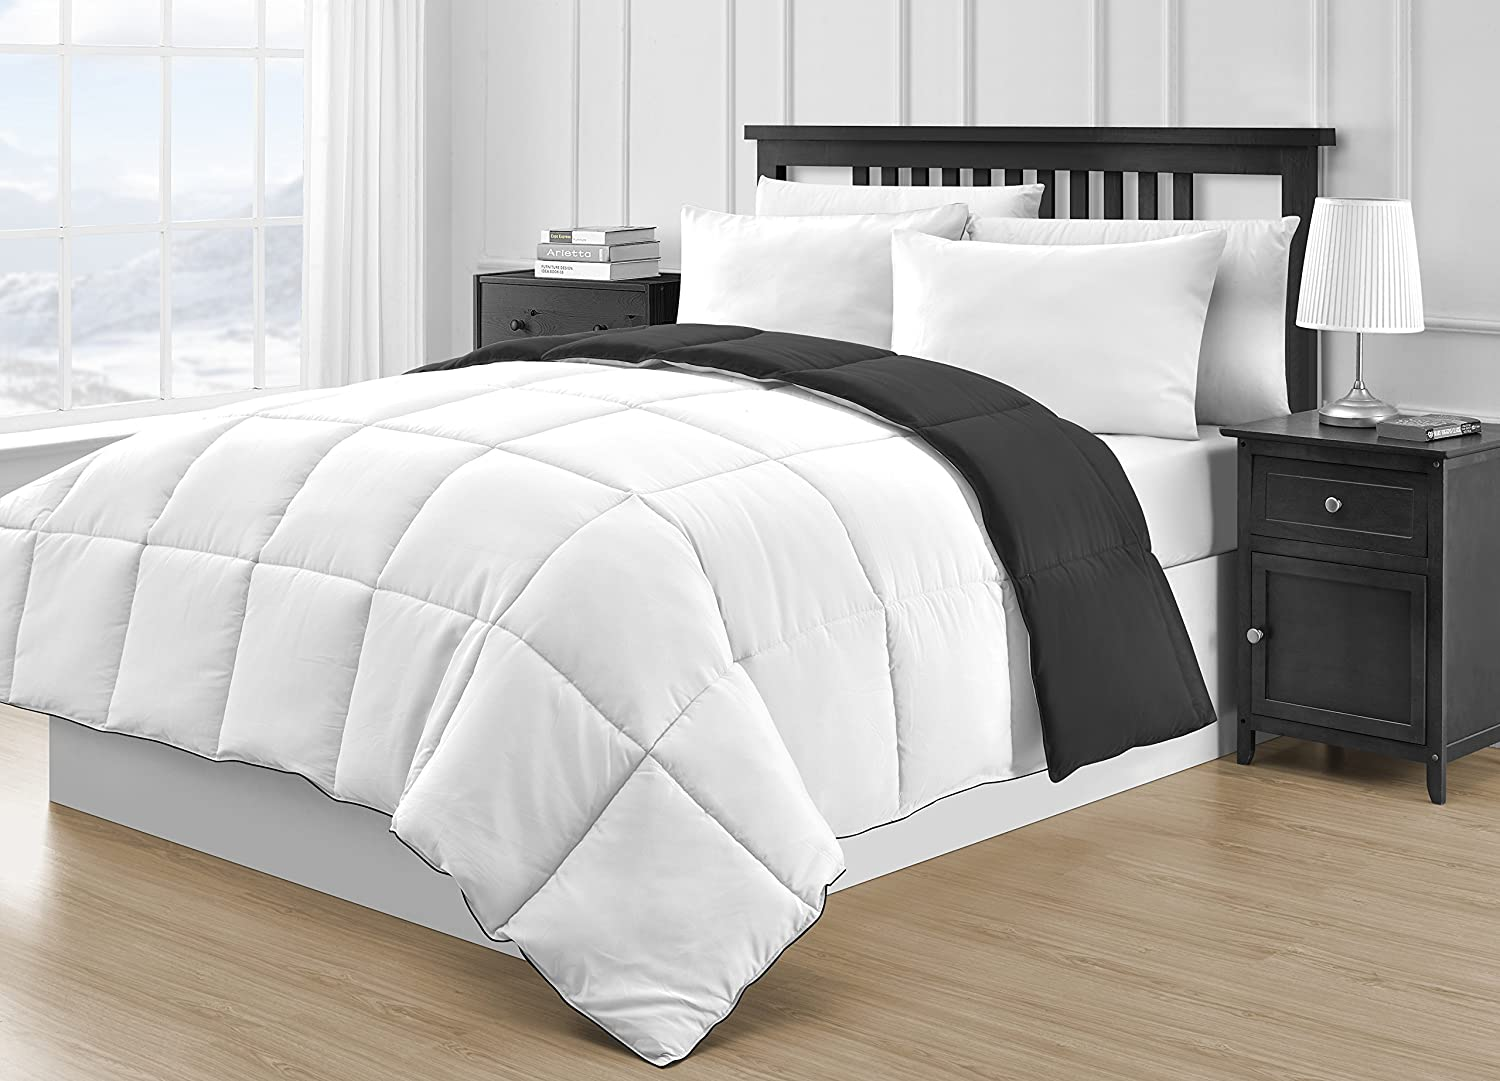 queen miraculous applied regarding oversized bedspreads white inspiration comforter sets set to home bed your bedroom black king comforters